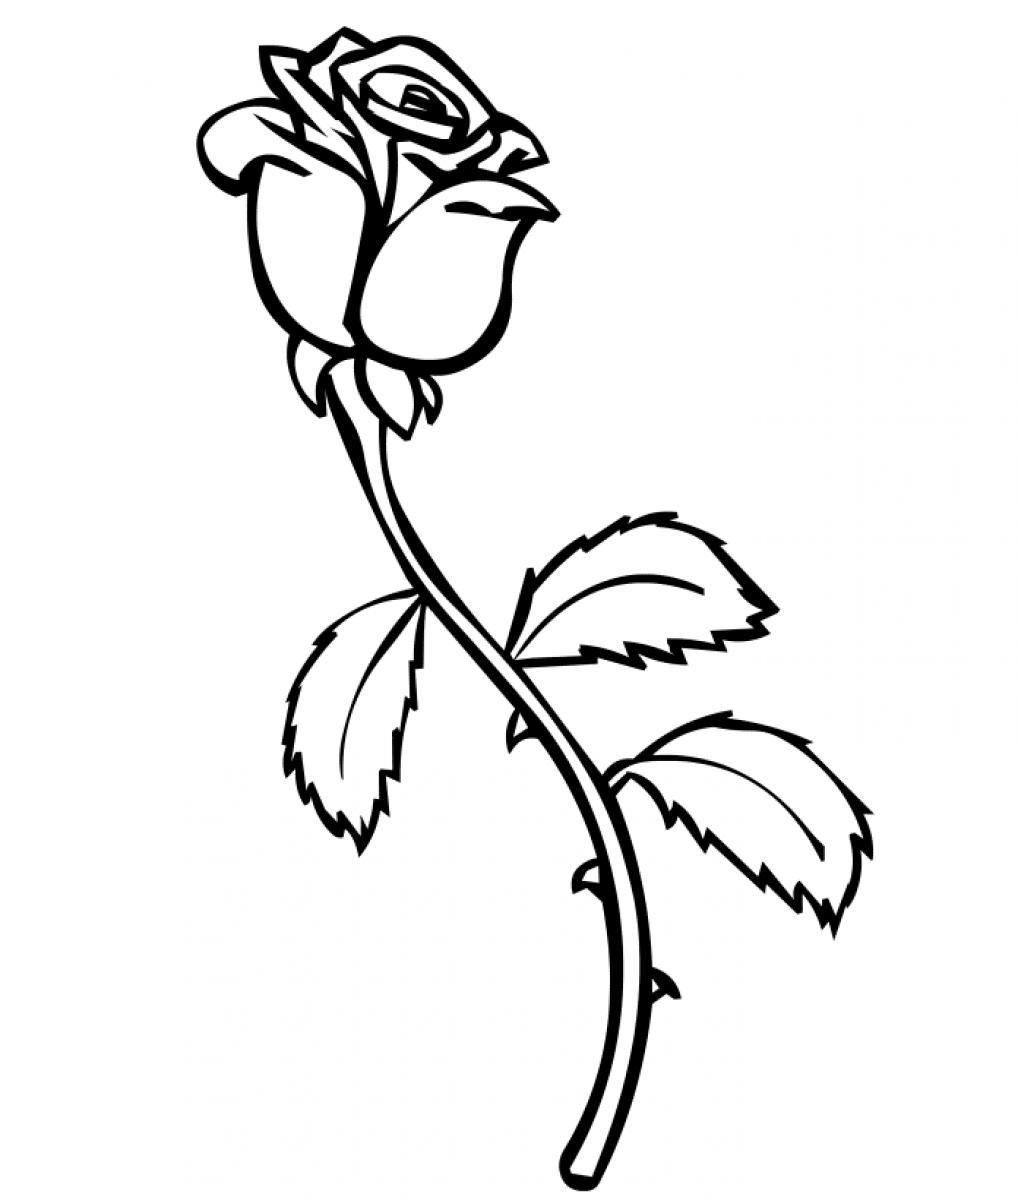 coloring page rose rose coloring pages download and print rose coloring pages page coloring rose